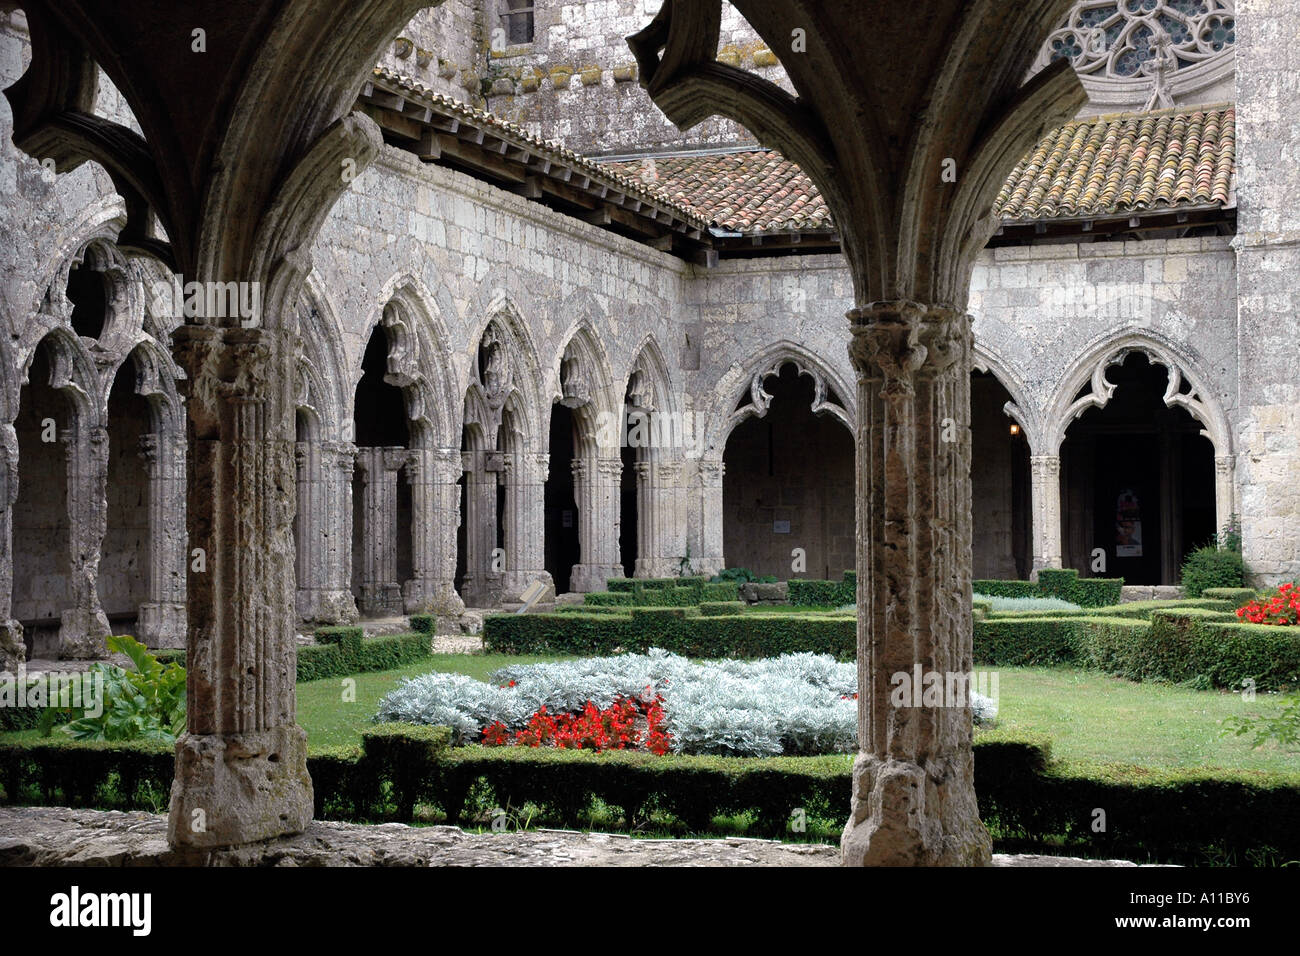 The Gothic cloisters of the 14th century collegiate church of La Romieu, a pretty village in southwest France - Stock Image